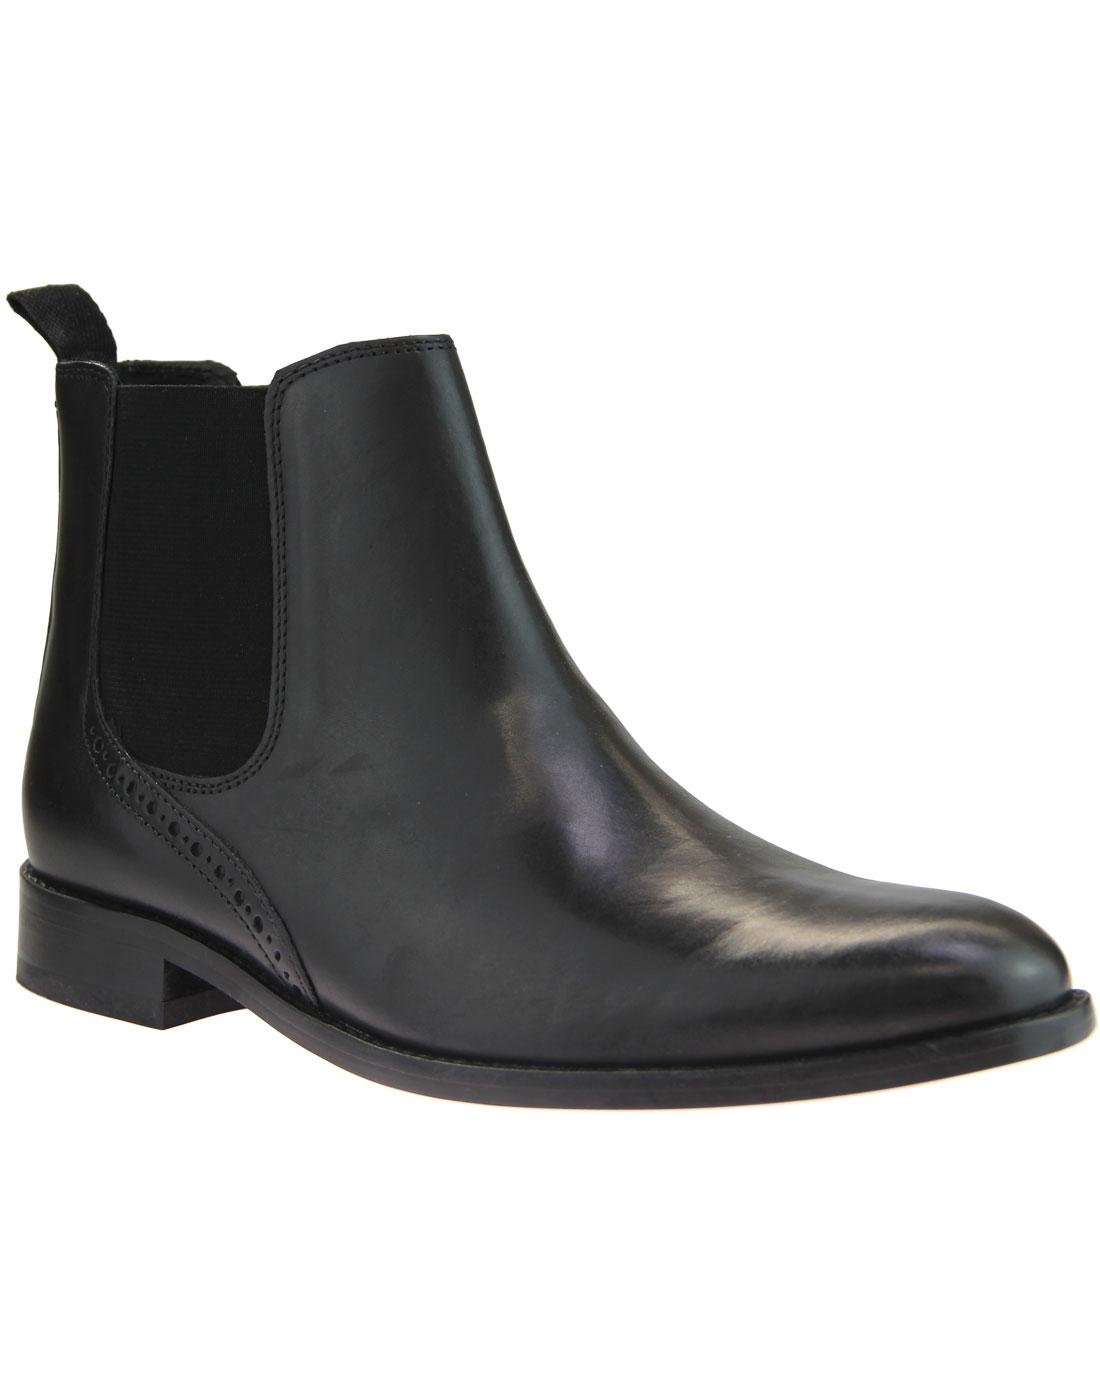 Jerry IKON Retro Mod Black Leather Chelsea Boots